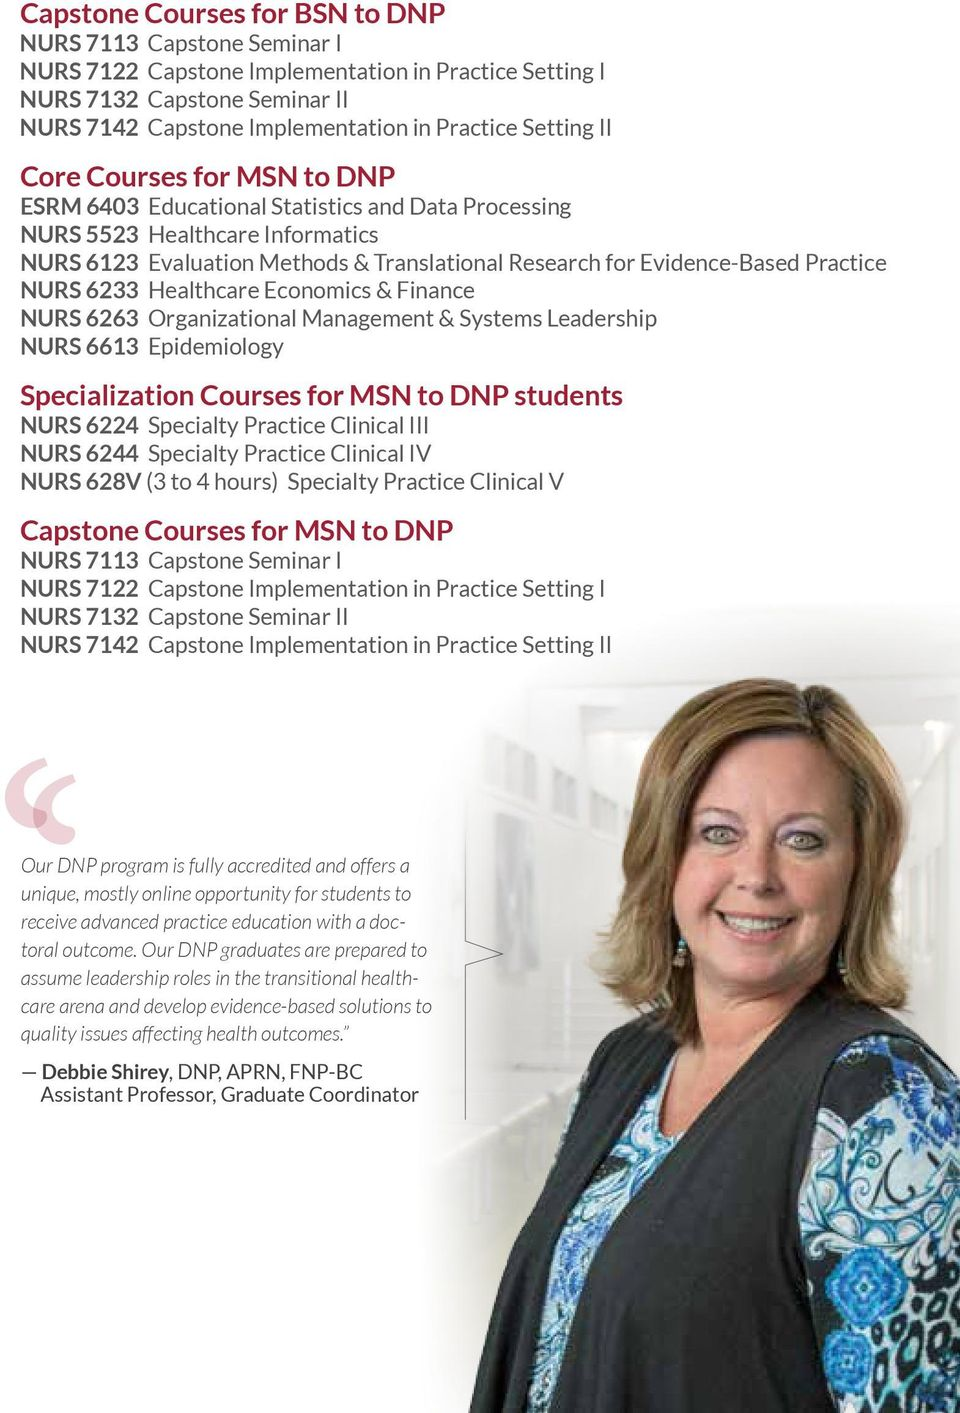 Practice NURS 6233 Healthcare Economics & Finance NURS 6263 Organizational Management & Systems Leadership NURS 6613 Epidemiology Specialization Courses for MSN to DNP students NURS 6224 Specialty